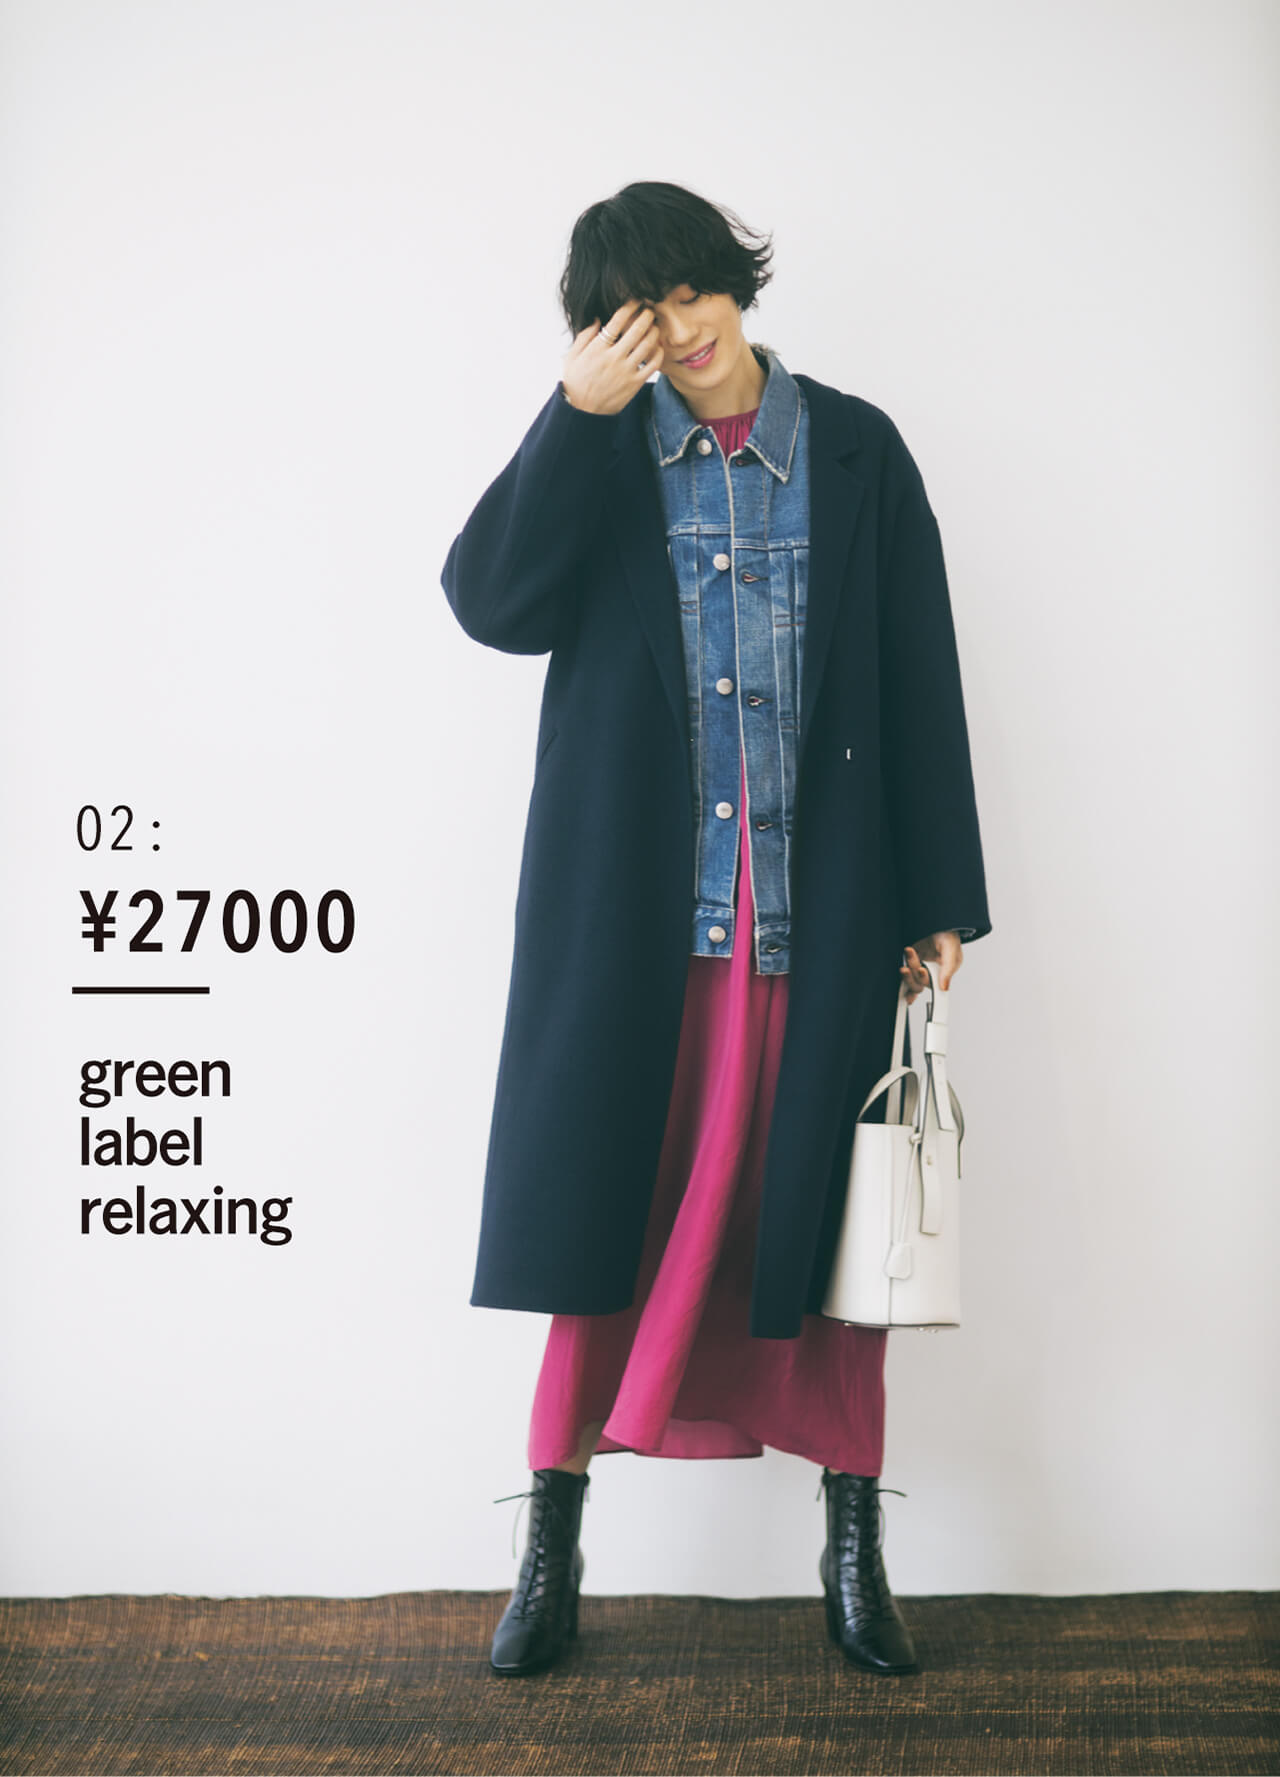 02 : ¥27000 green label relaxing